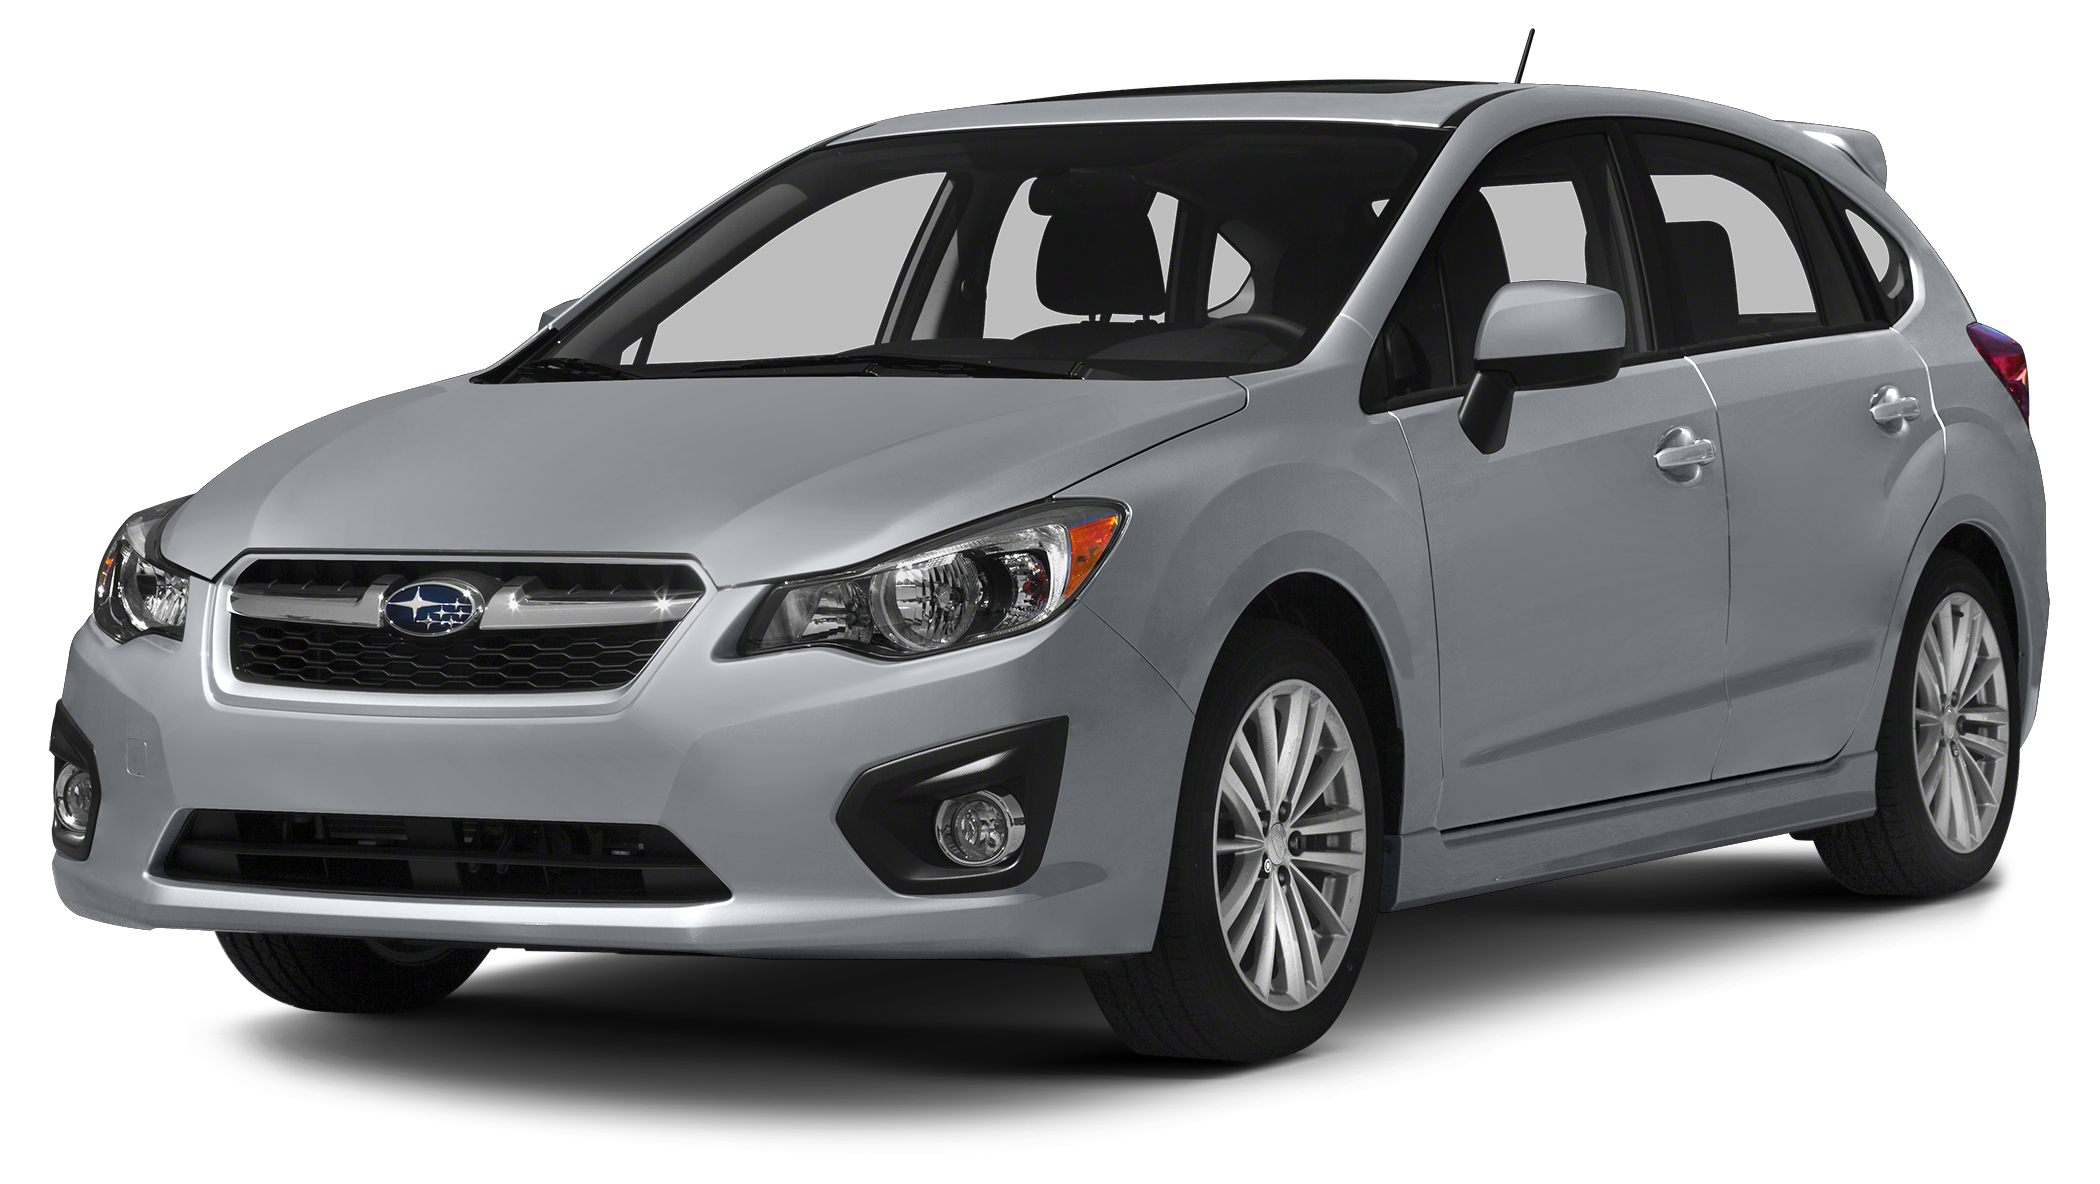 2014 Subaru Impreza 20i DISCLAIMER We are excited to offer this vehicle to you but it is currentl